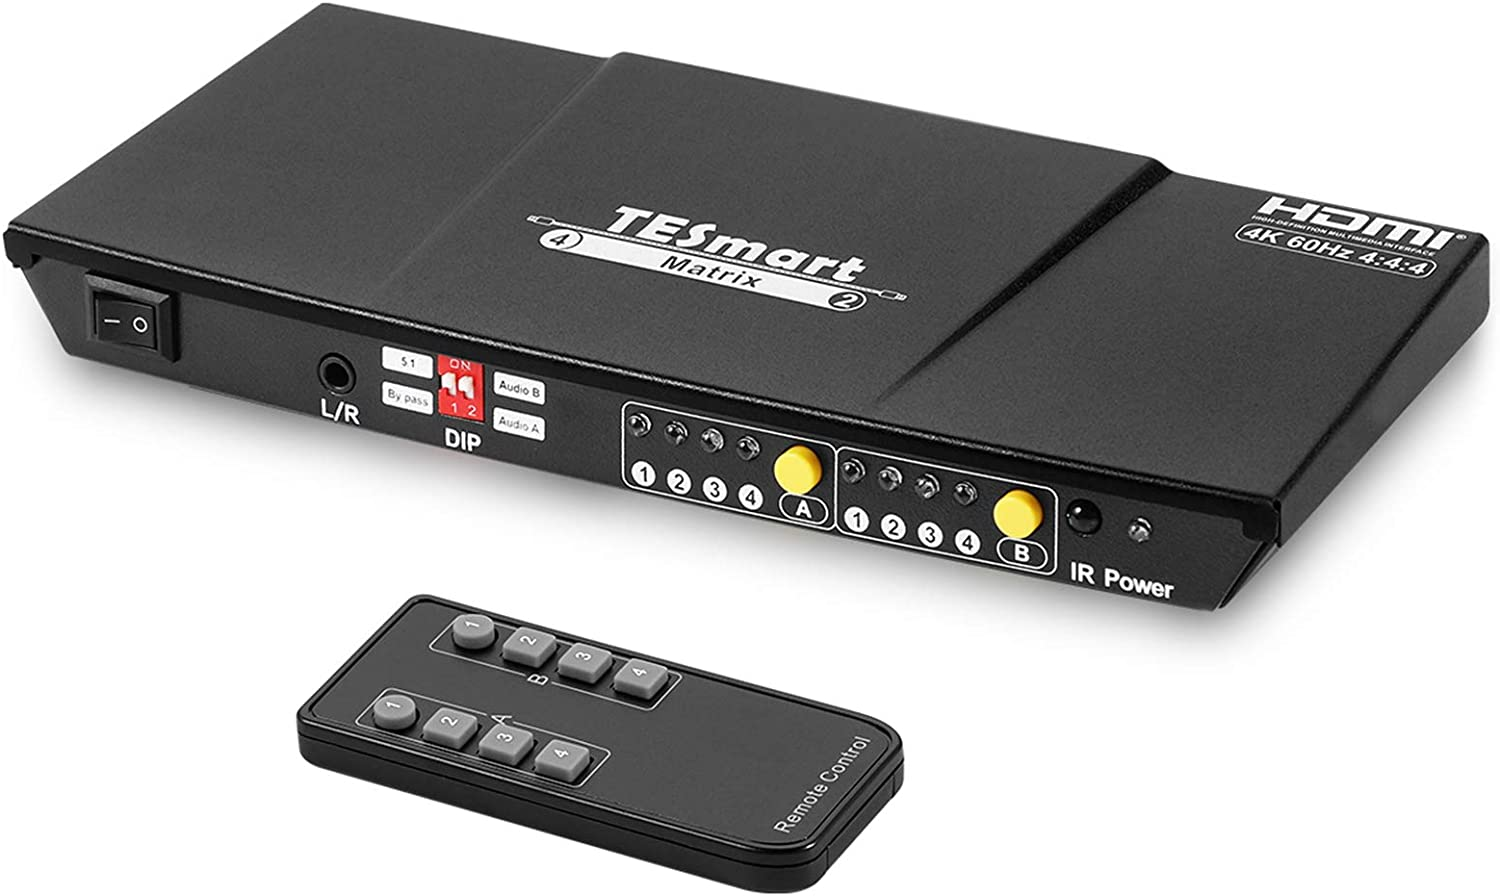 TESmart 4x2 HDMI Matrix Switch Splitter, 4K@60Hz HDMI Switcher Box, 4 in 2 Out with IR Remote Control Supports HDCP 2.2 18Gbps, Ultra HD 4K x 2K, 3D, 1080p, EDID, HDR Dolby Vision (Black)